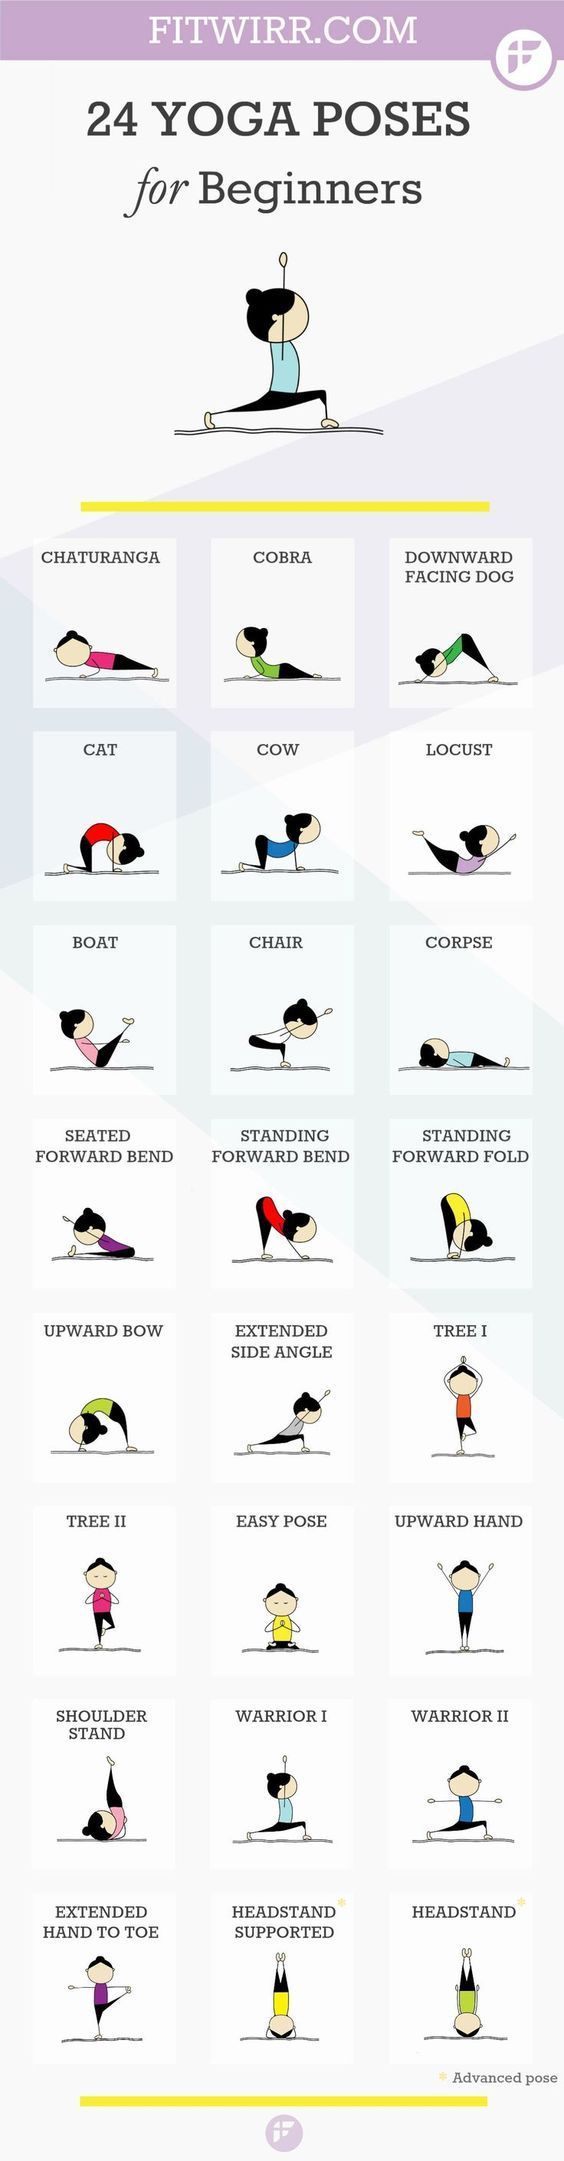 DownDog Healthy Lifestyle Tips: 24 Beginners Yoga Poses You Can Start with at Home. From the Downdog Diary Yoga Blog found exclusively at DownDog Boutique